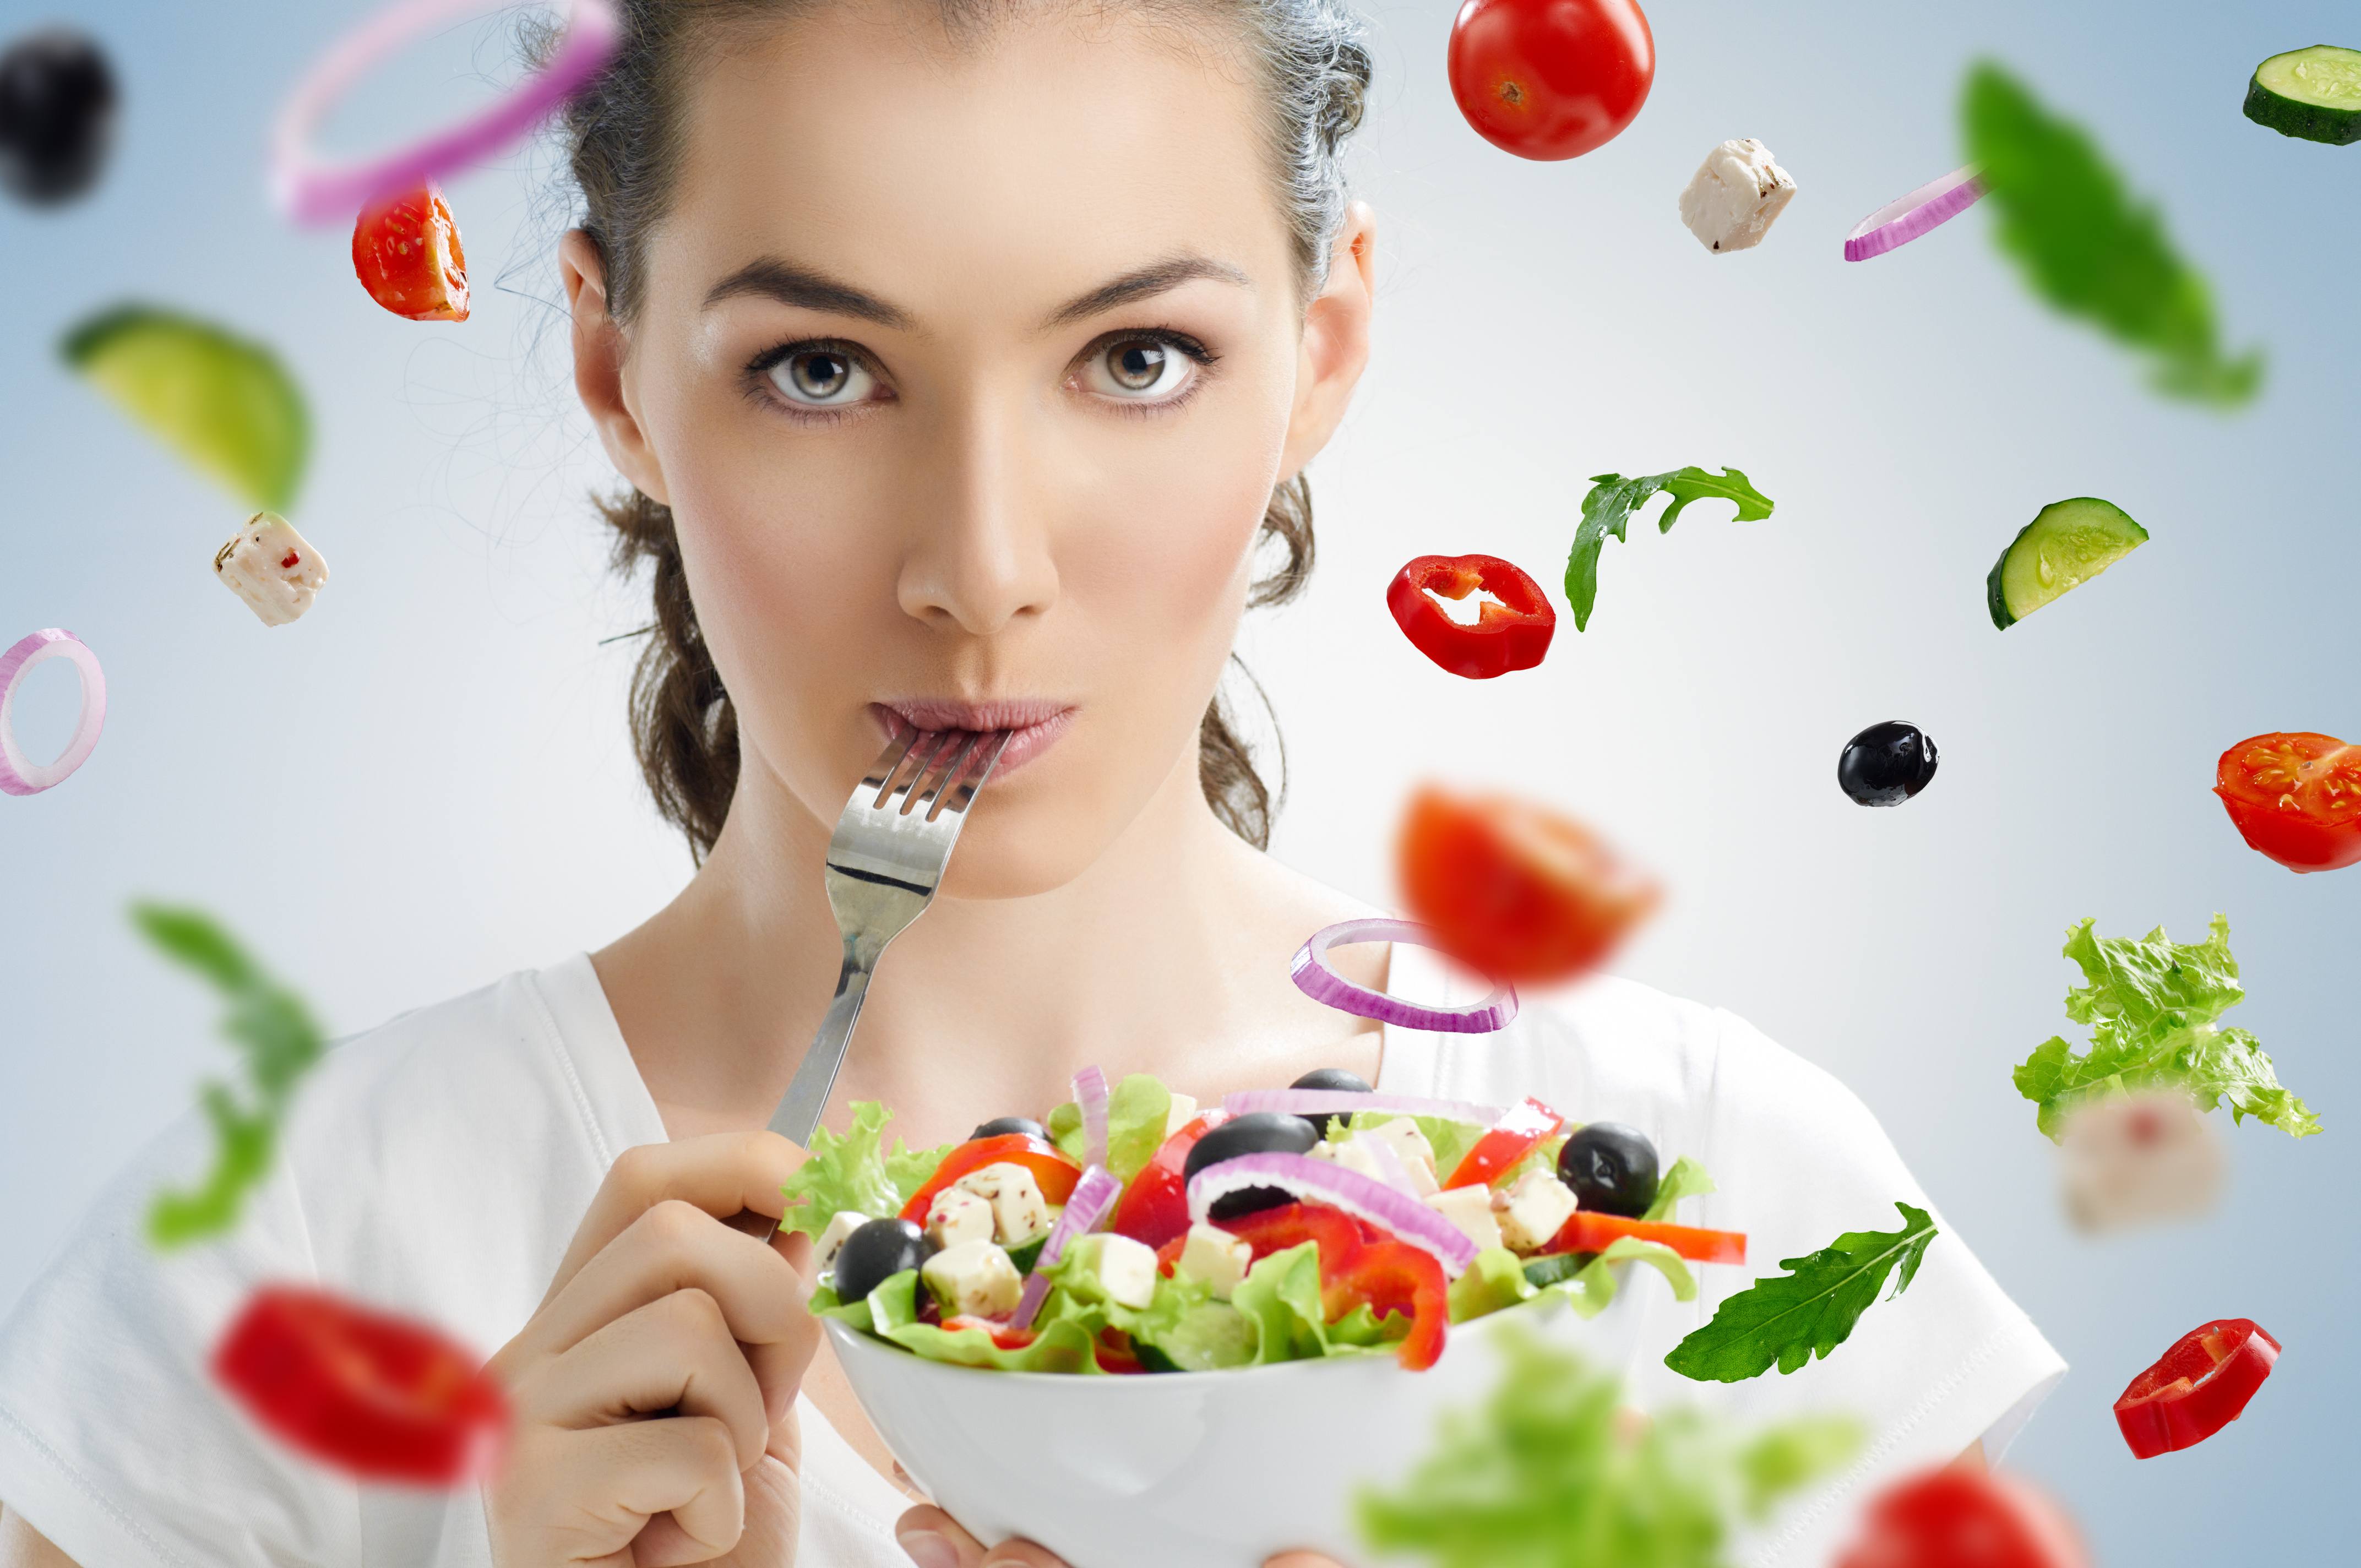 eating healthy and its affect on A quick bite on your way to work, a working lunch, and grabbing take-out on your way home does adversely affect your health eating fresh home-cooked meals allows you to make healthier choices while spending less and supporting a healthy lifestyle.